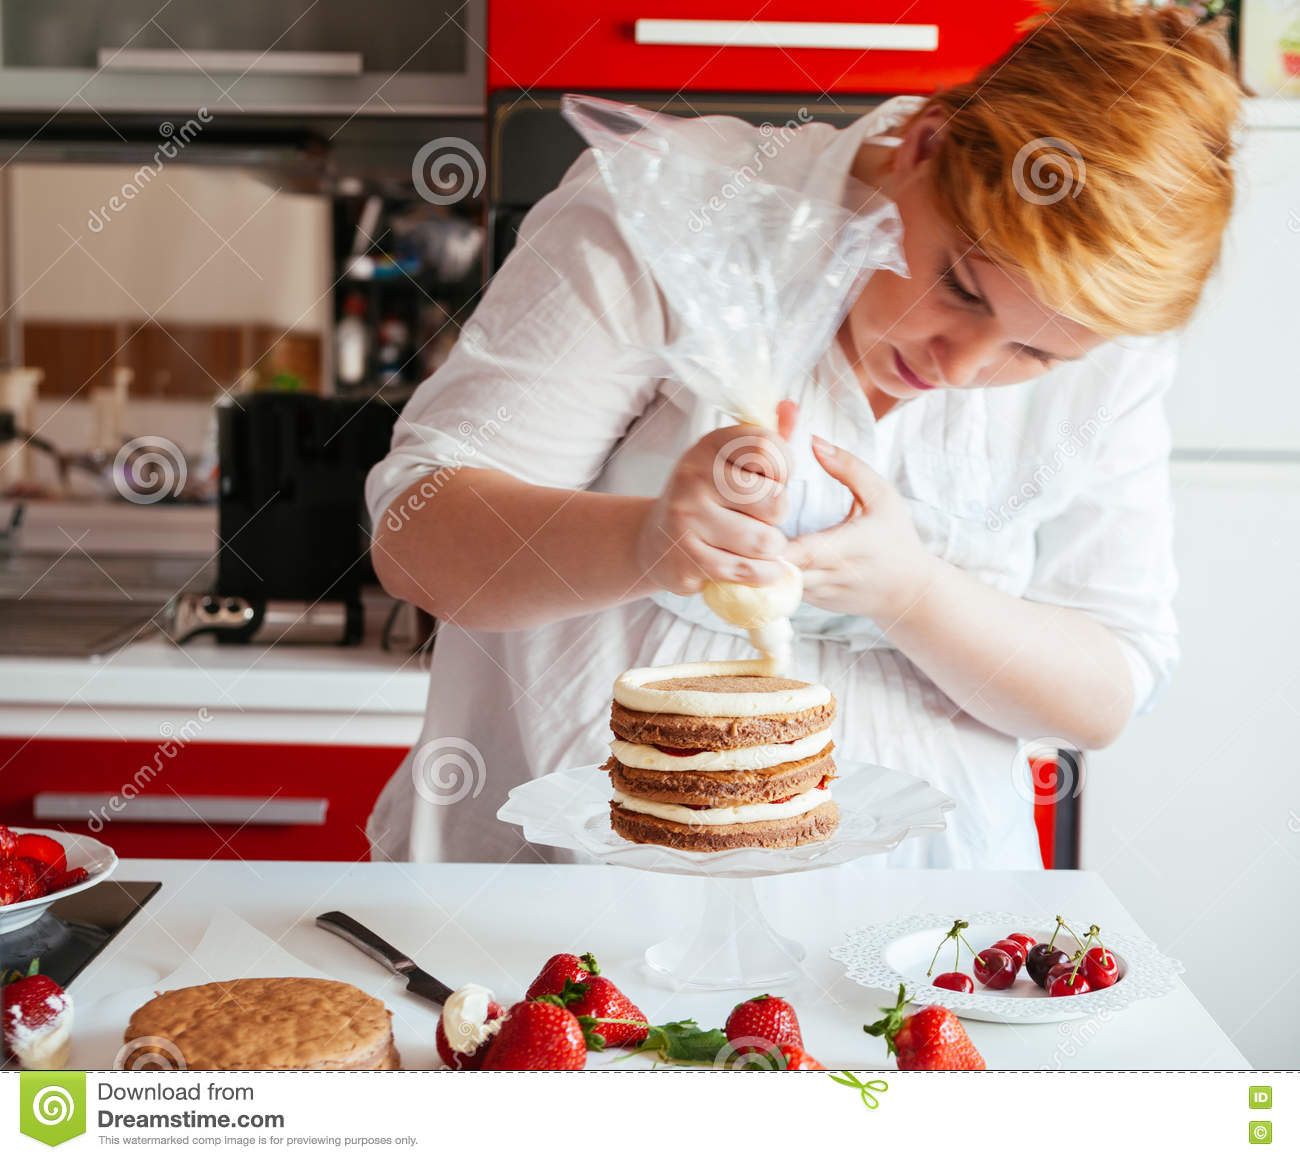 from Layne naked woman cake images